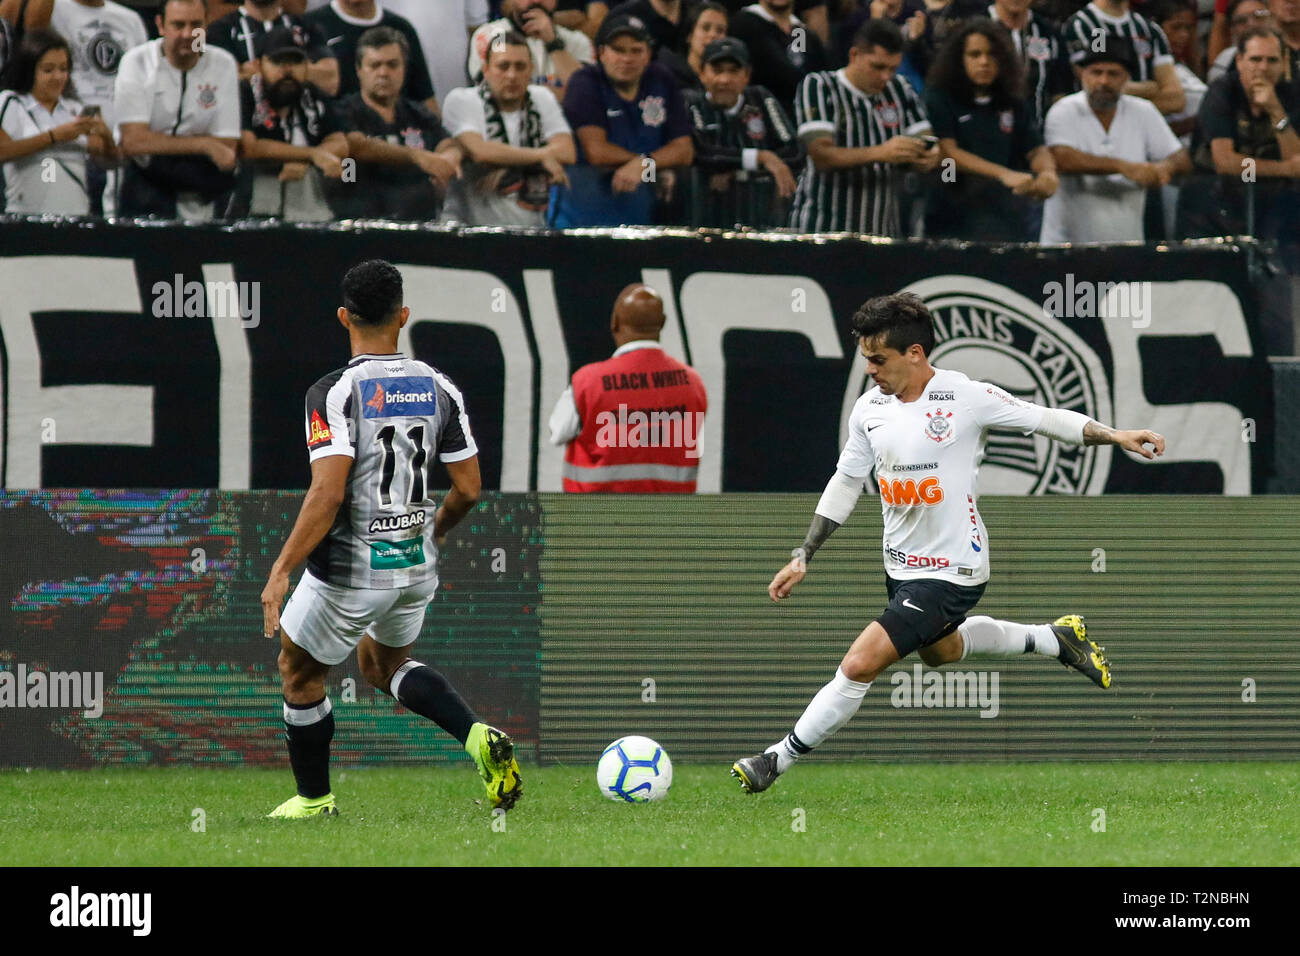 Sao Paulo Sp 03 04 2019 Corinthians X Ceara Fagner During The Match Between Corinthians And Ceara Held At The Corinthians Arena East Zone Of Sao Paulo The Match Is Valid For